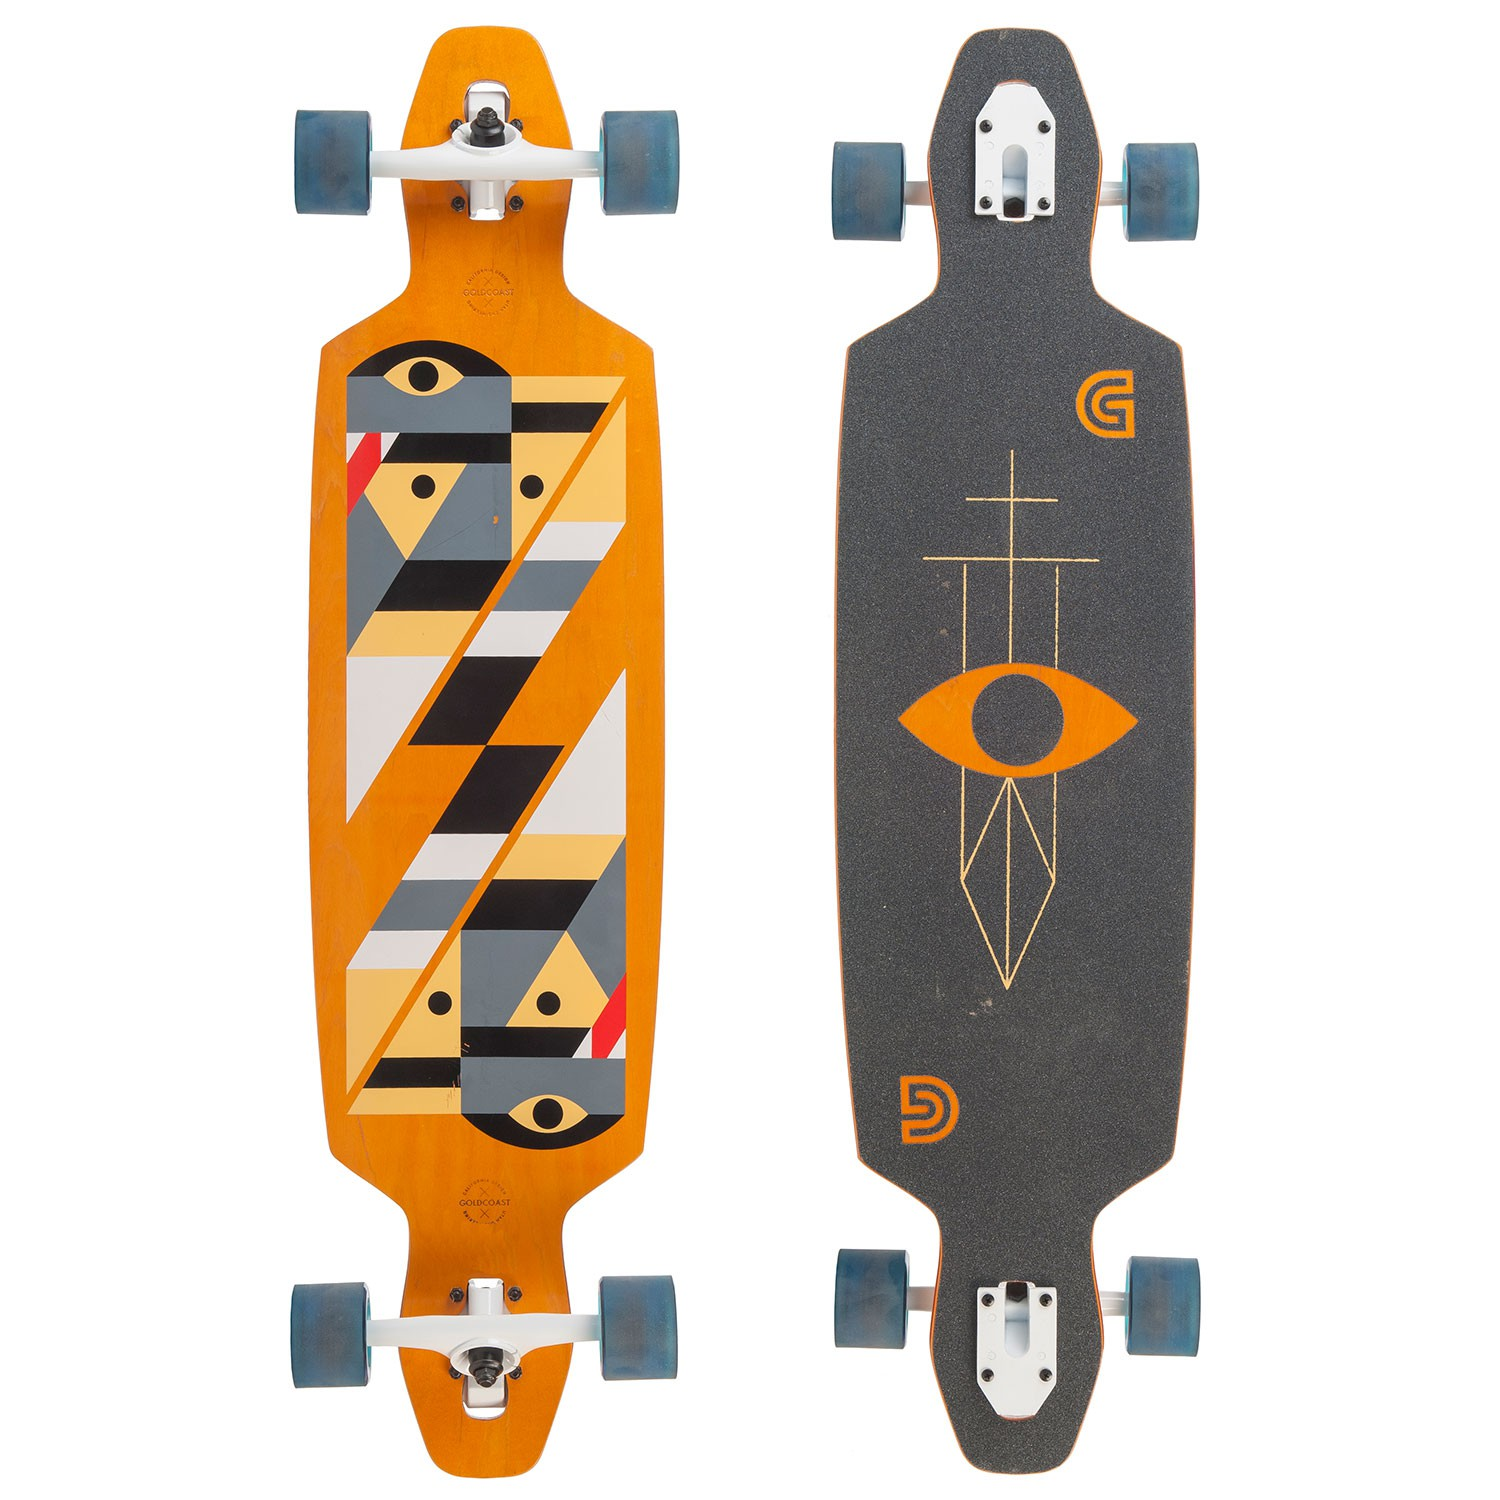 "Longboard Goldcoast Serpentagram Drop Through yellow vel.40"" / 102 cm 16 + Kšiltovka Goldcoast ZDARMA"